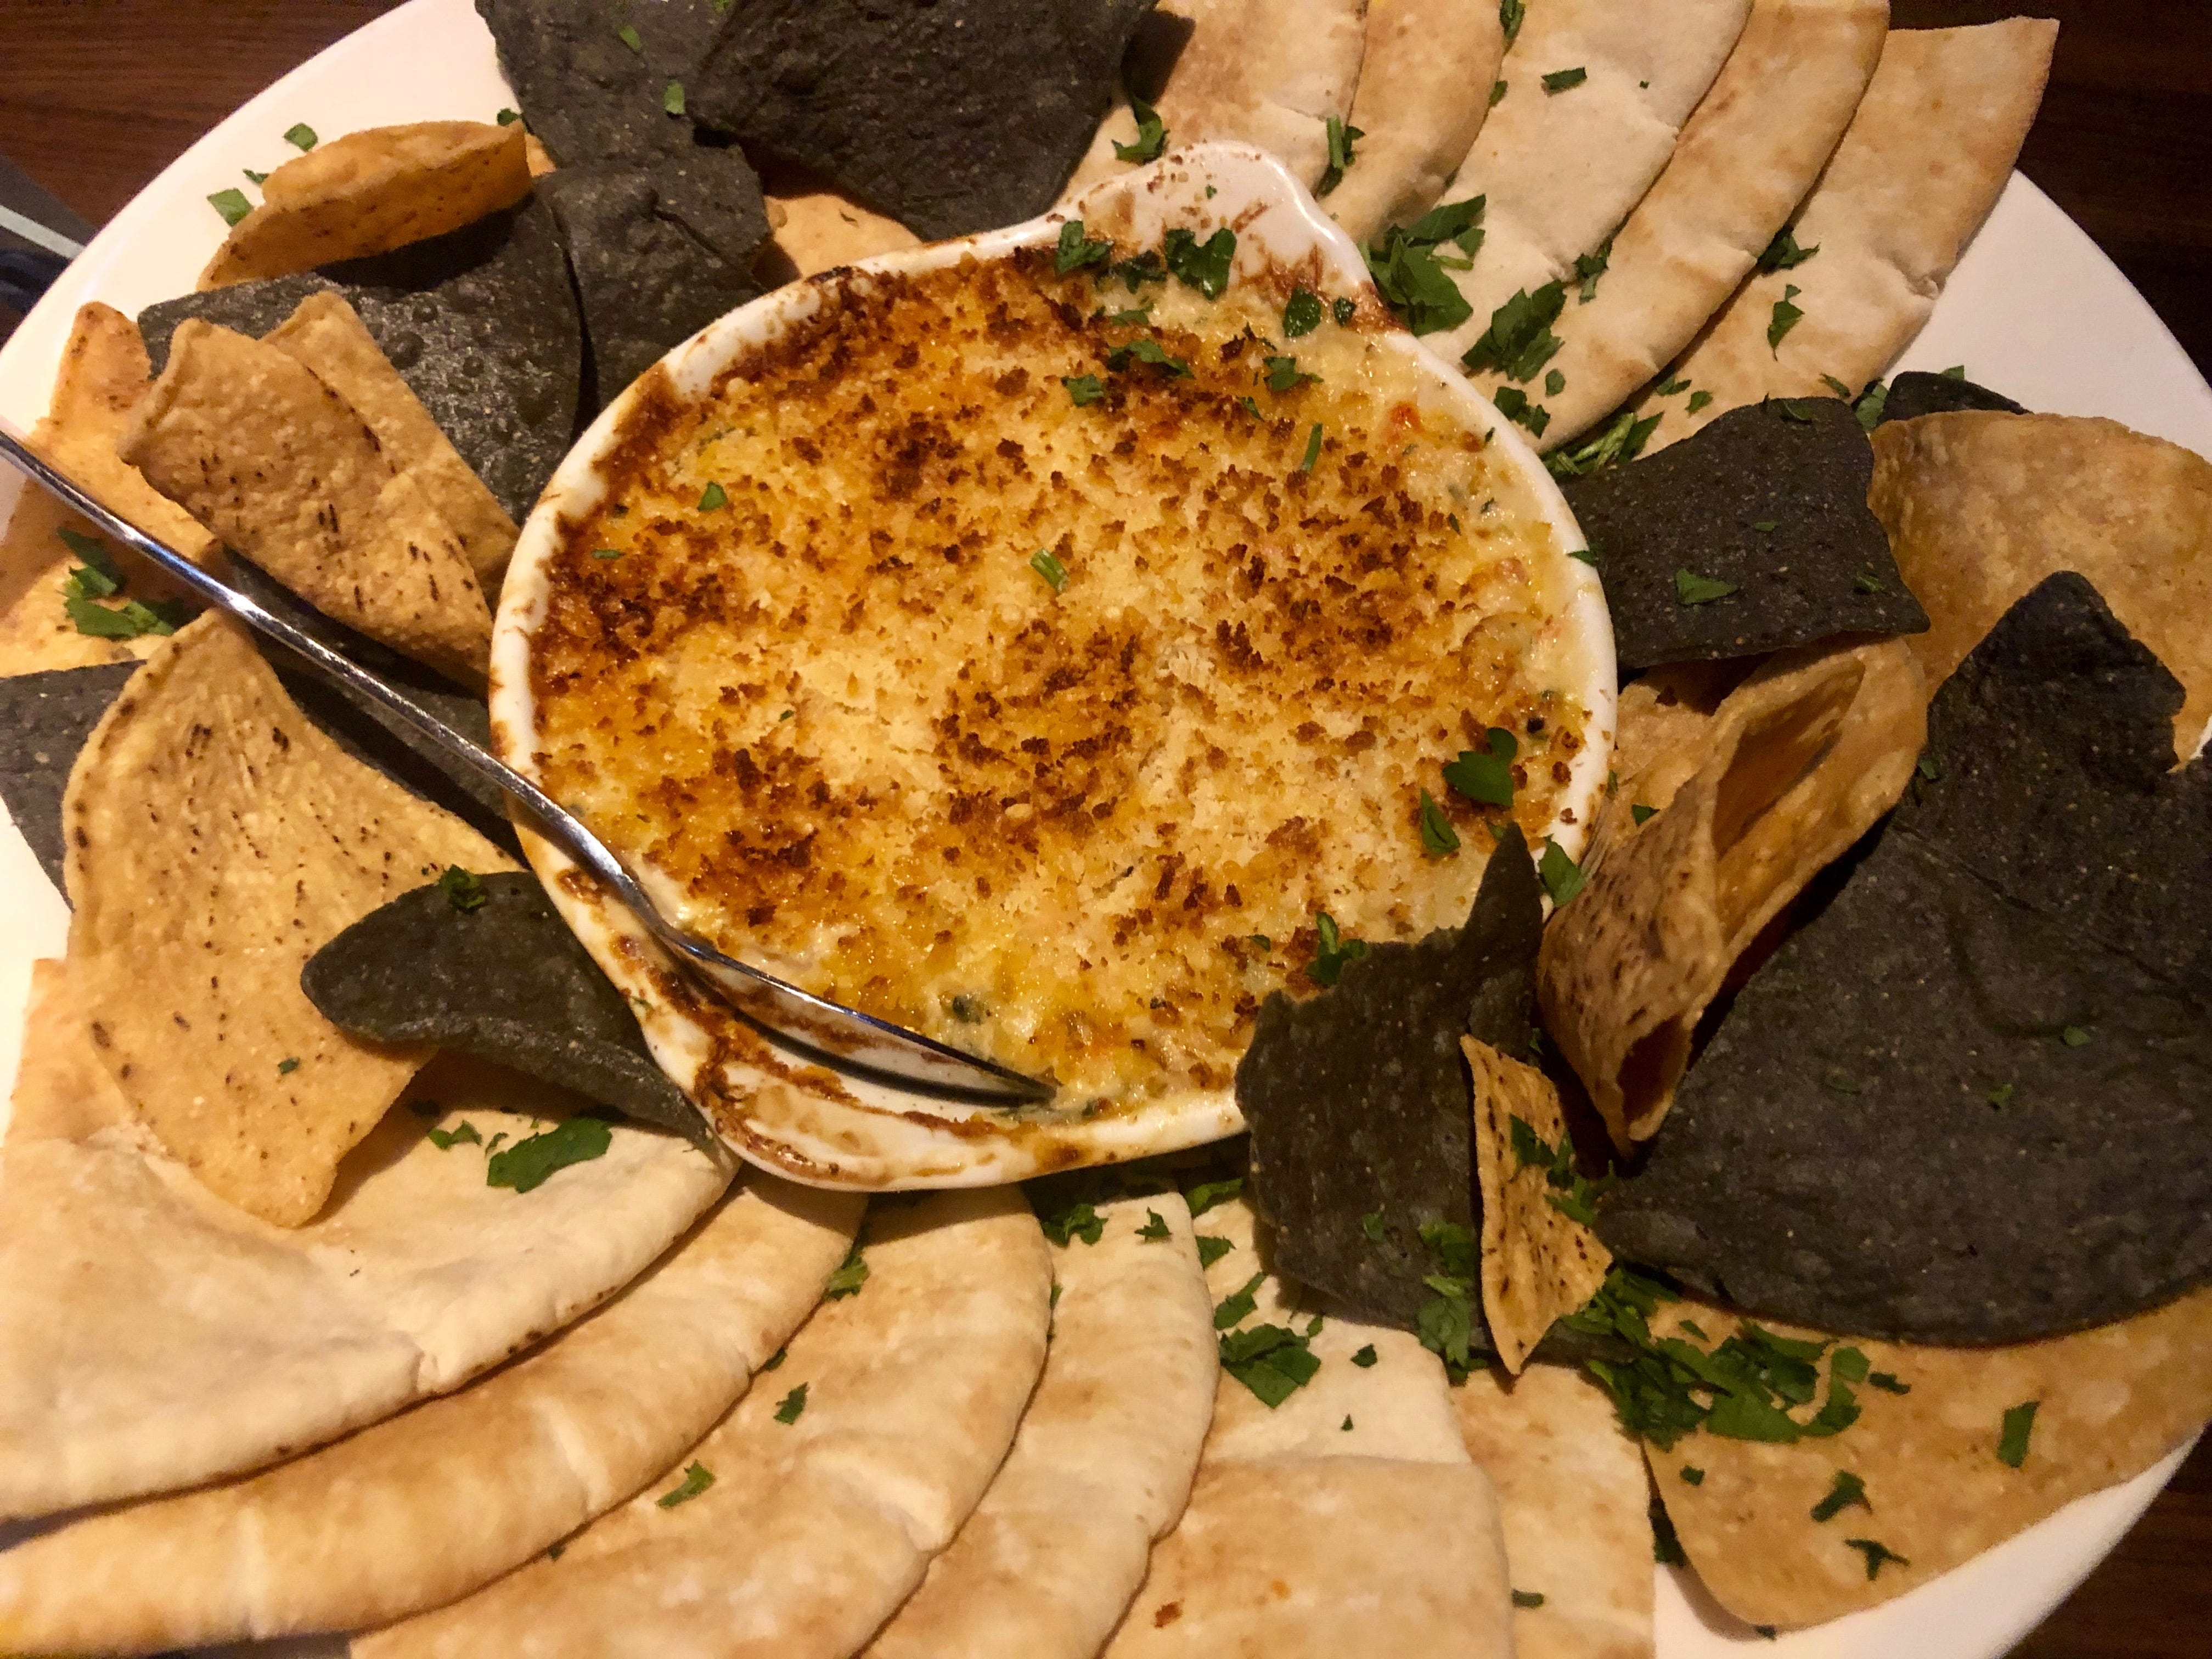 Lobster, crab and artichoke dip is warmly satisfying at Yard House in Naples.